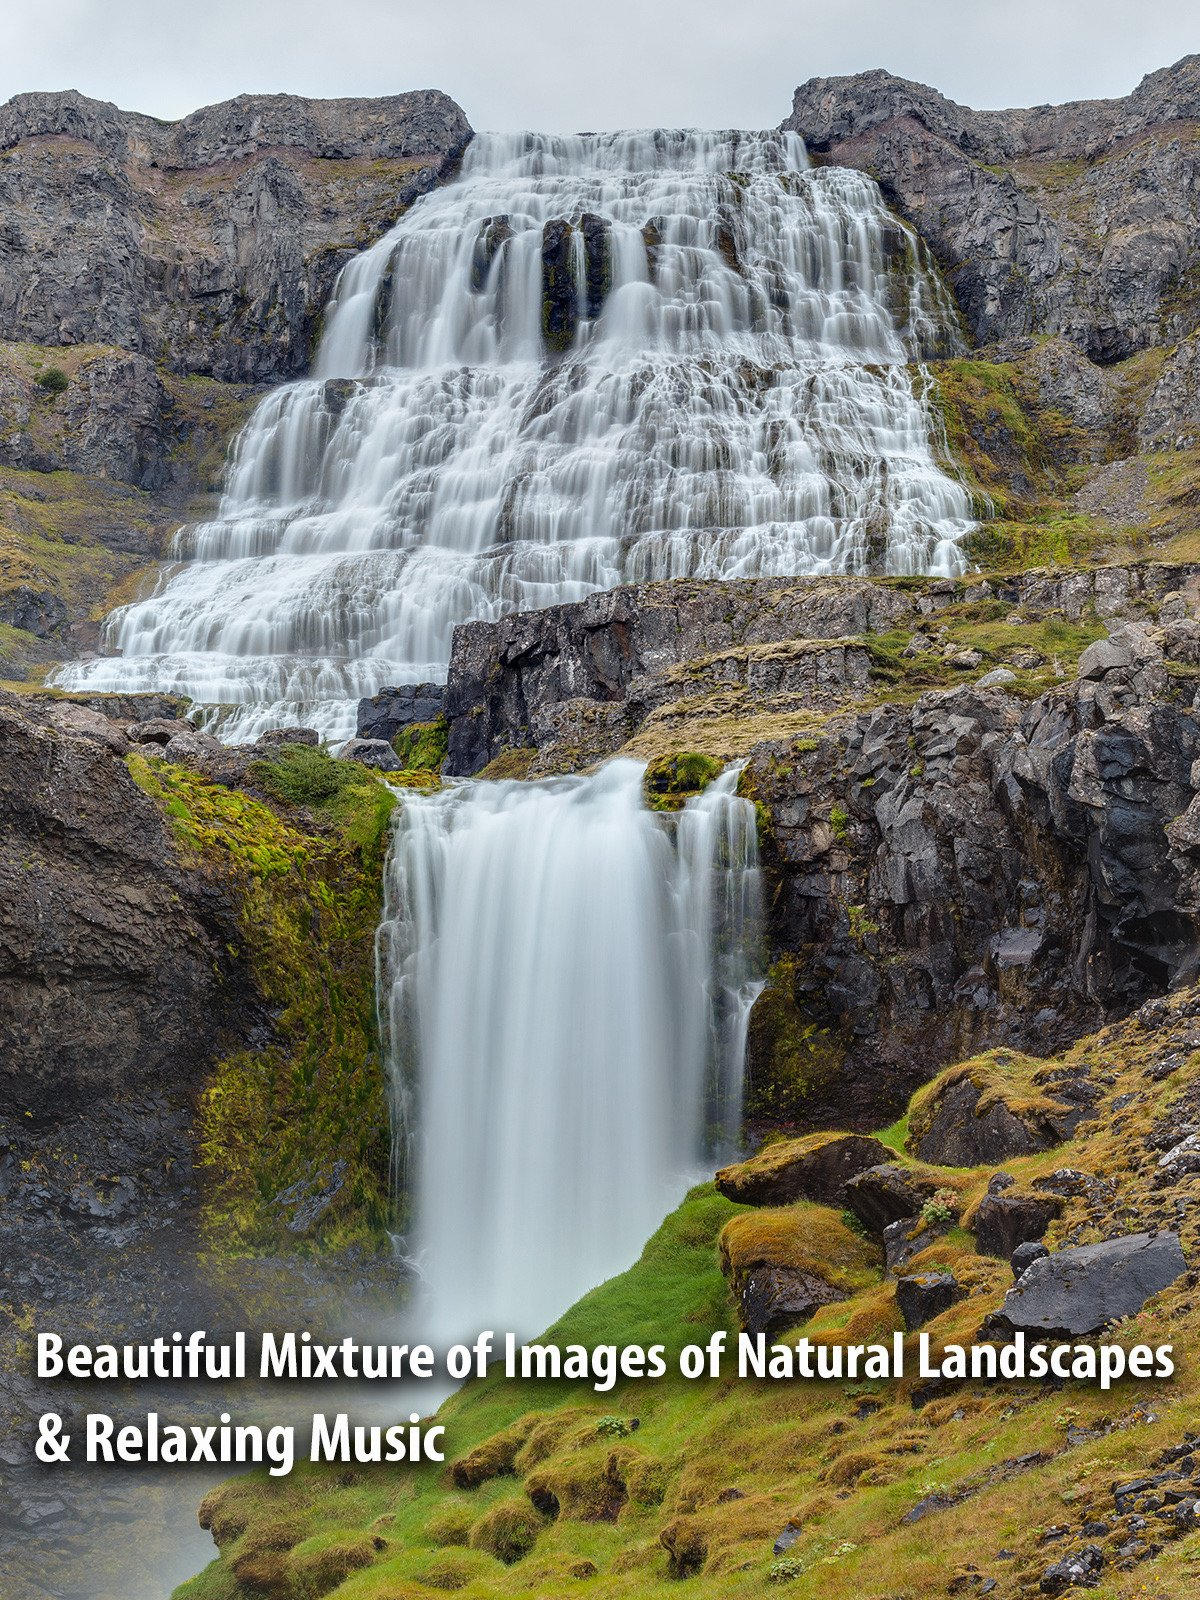 Beautiful Mixture of Images of Natural Landscapes & Relaxing Music